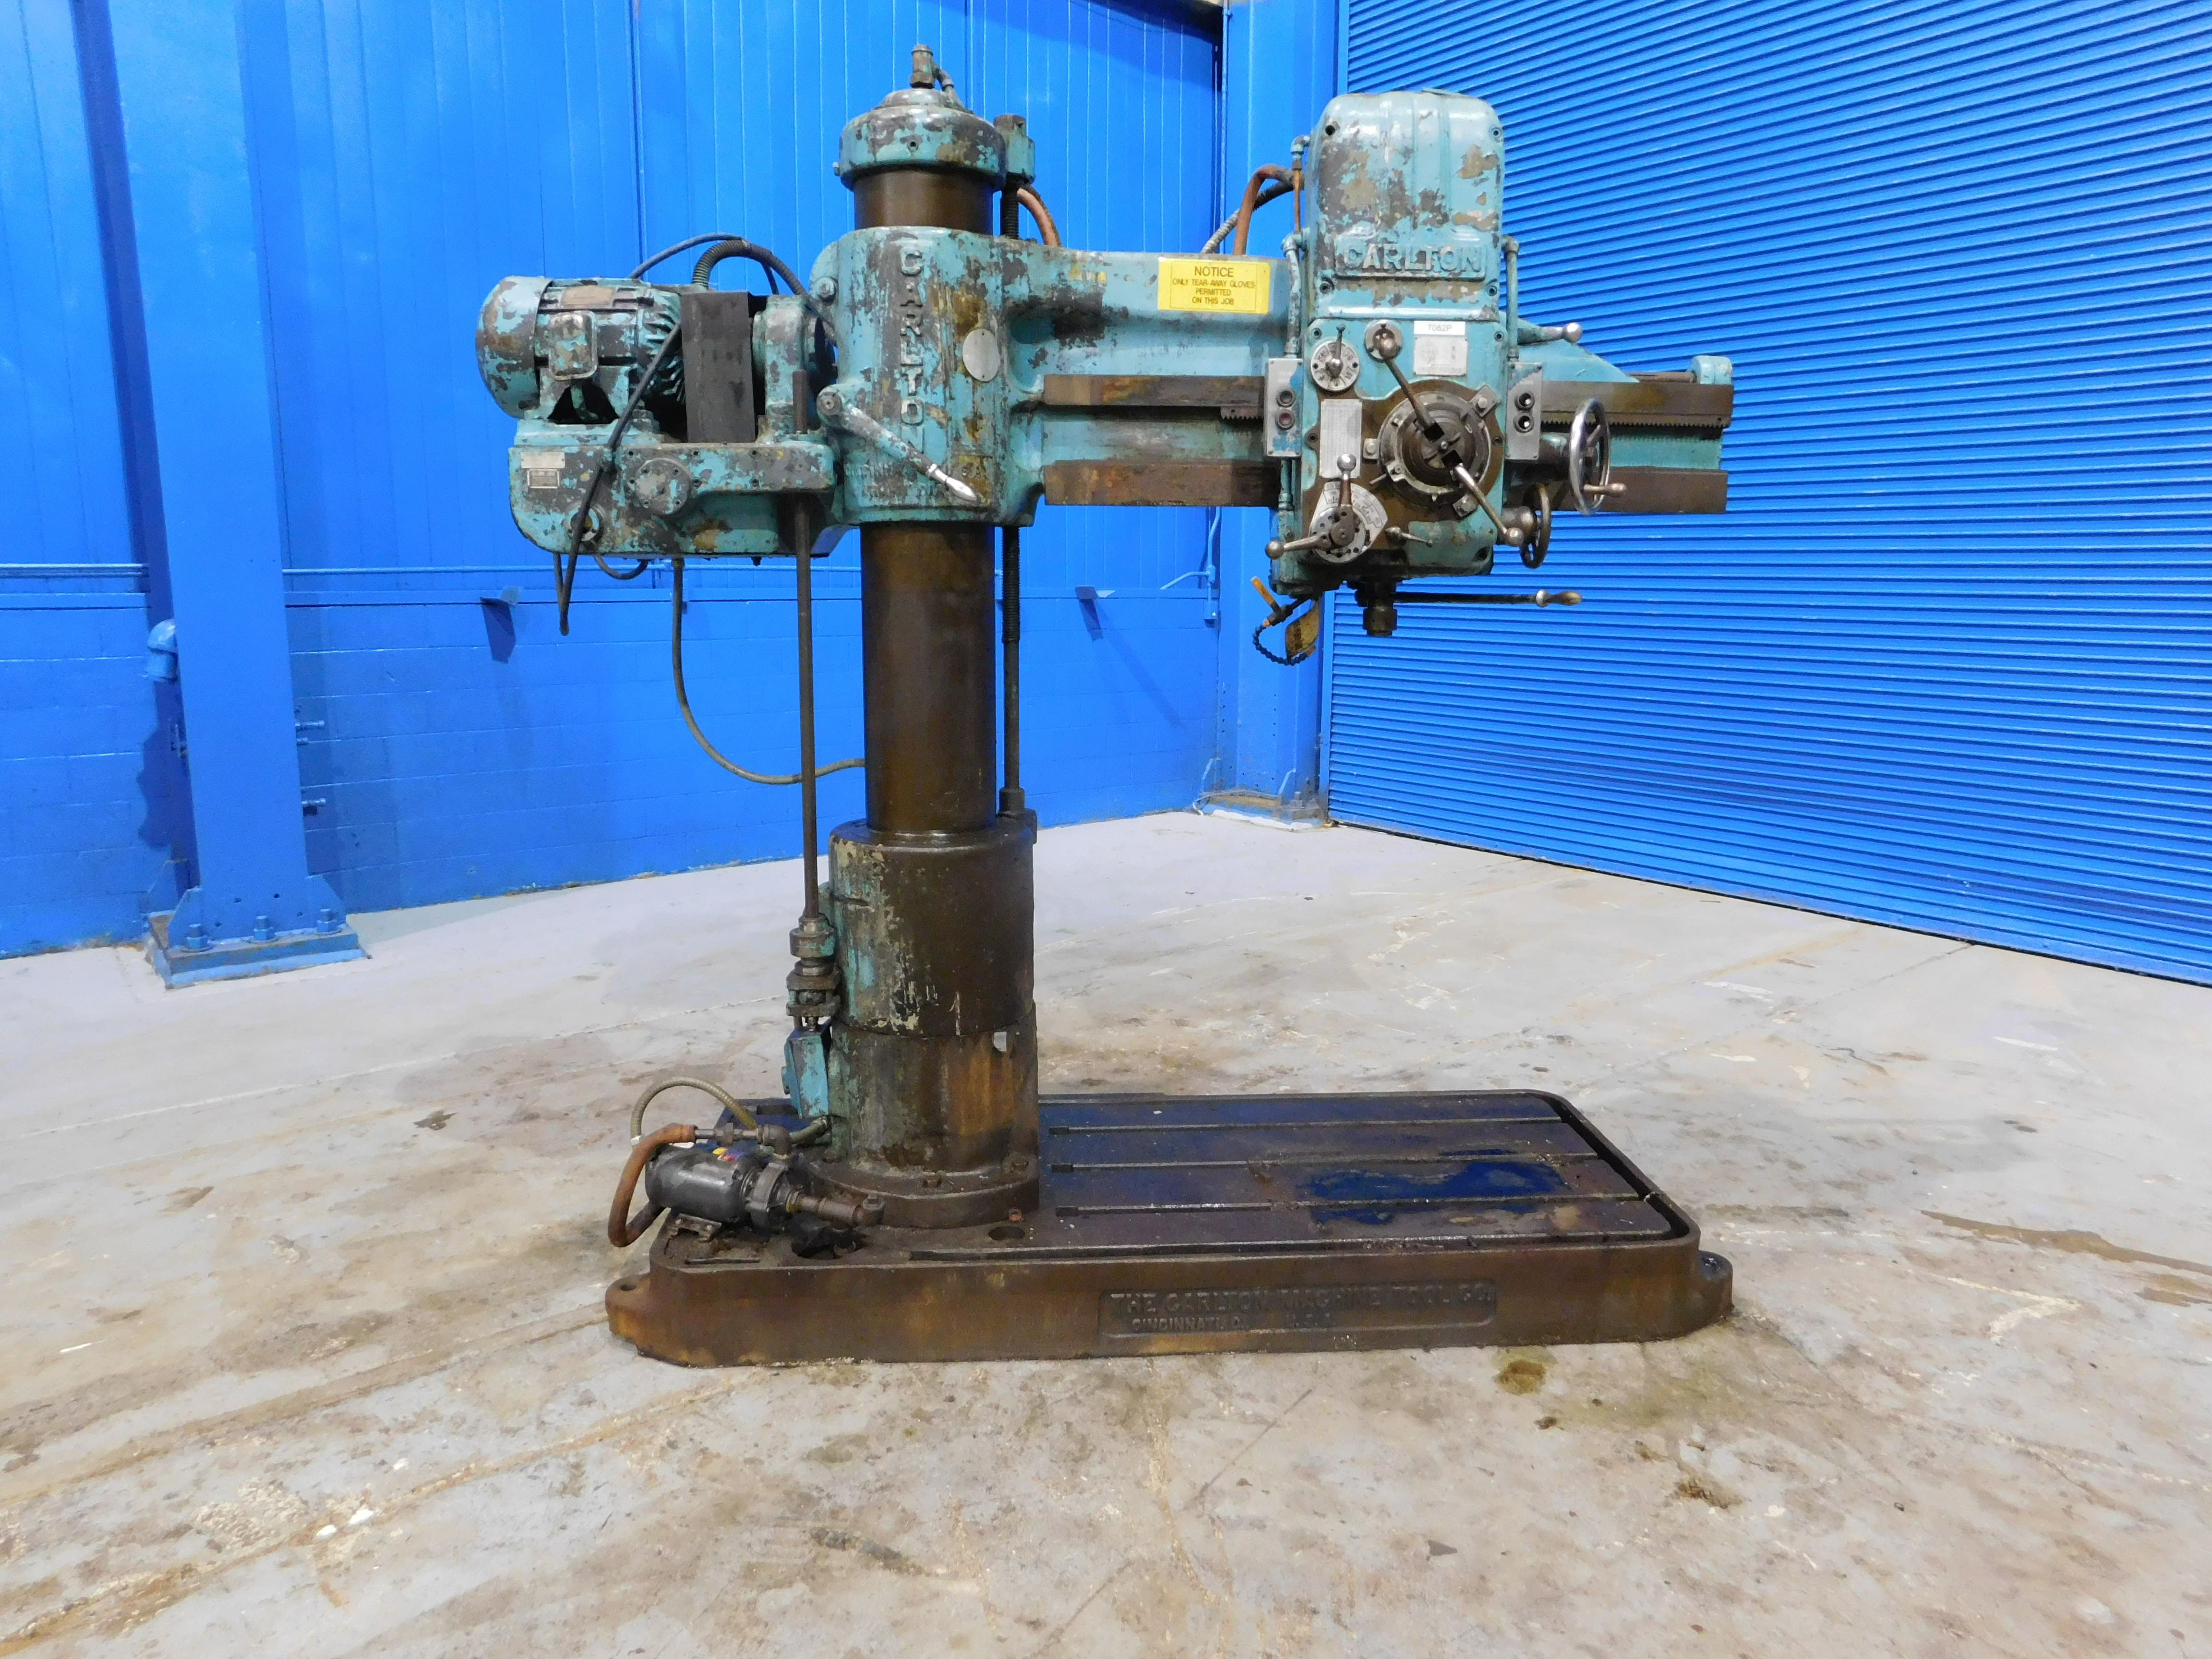 used drills manual and cnc for sale carlton radial arm drill 4 rh  machinetoolcommerce com Radial Drill Press Biggest Carlton Radial Drill